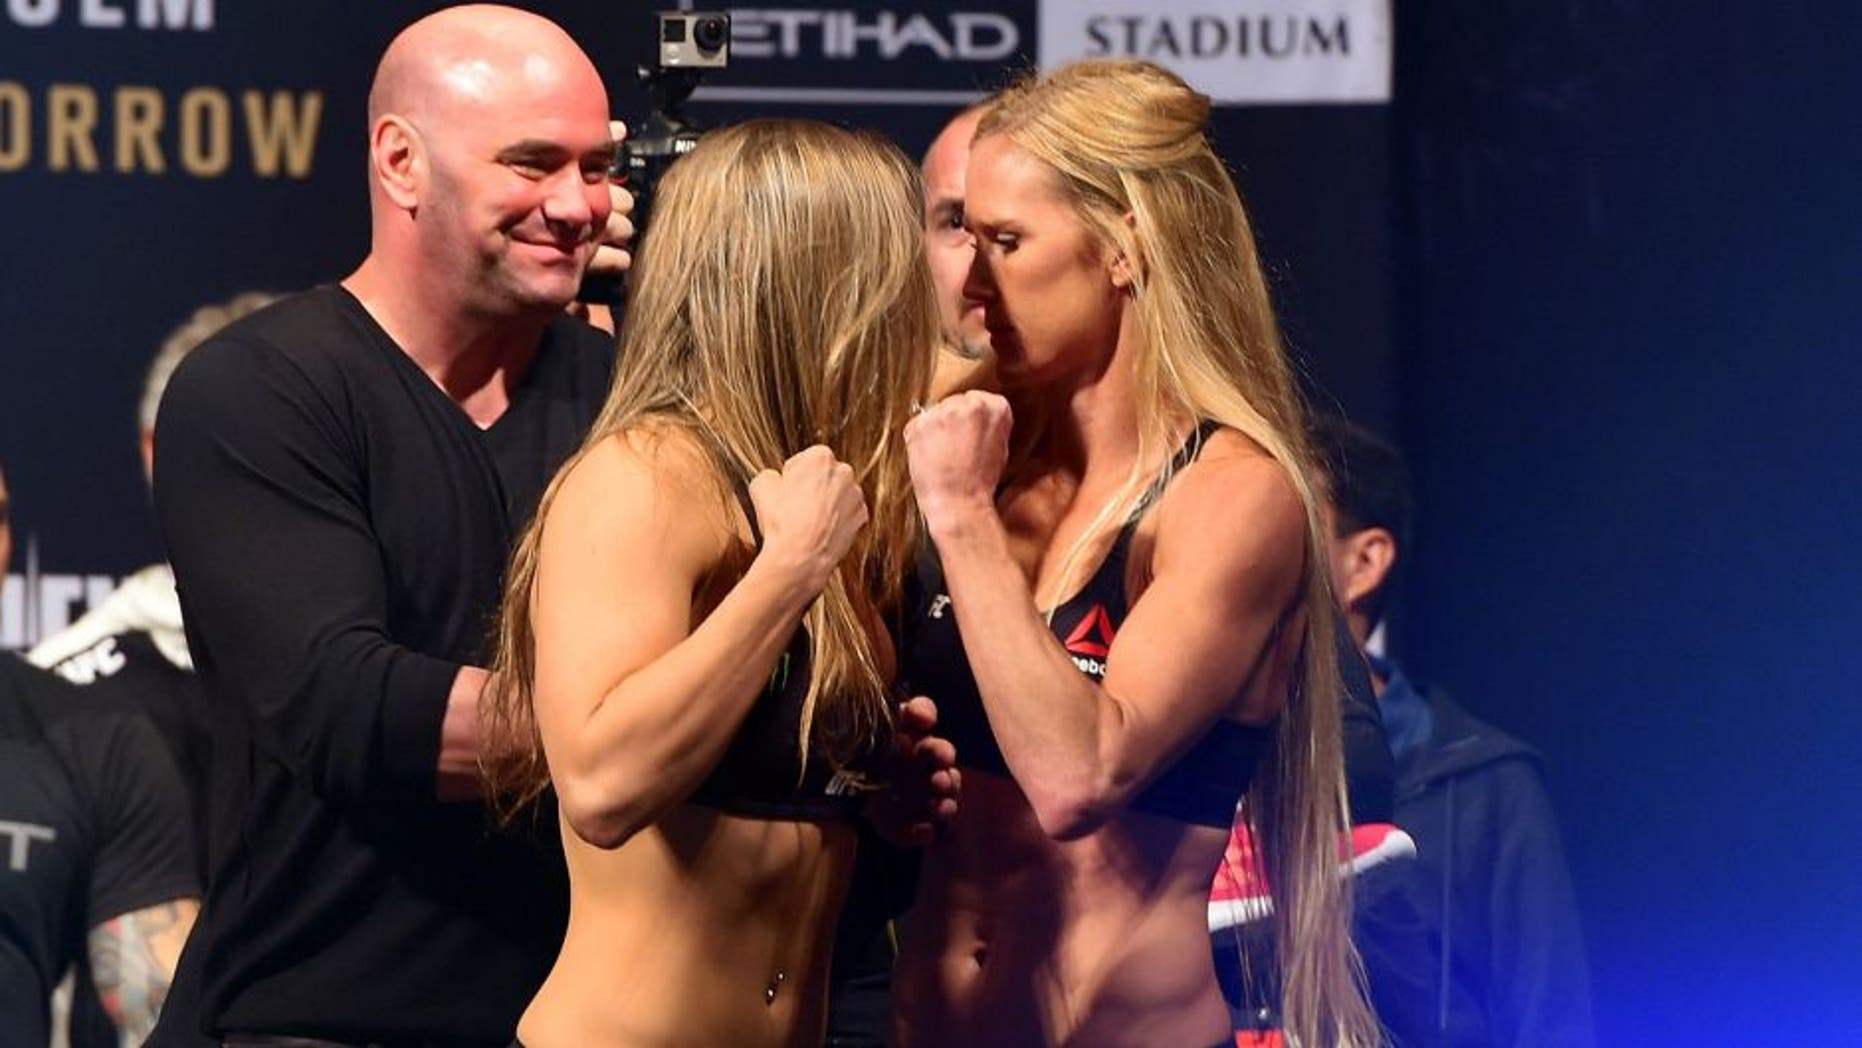 MELBOURNE, AUSTRALIA - NOVEMBER 14: (L-R) Opponents Ronda Rousey of the United States and Holly Holm of the United States face off during the UFC 193 weigh-in at Etihad Stadium on November 14, 2015 in Melbourne, Australia. (Photo by Josh Hedges/Zuffa LLC/Zuffa LLC via Getty Images)